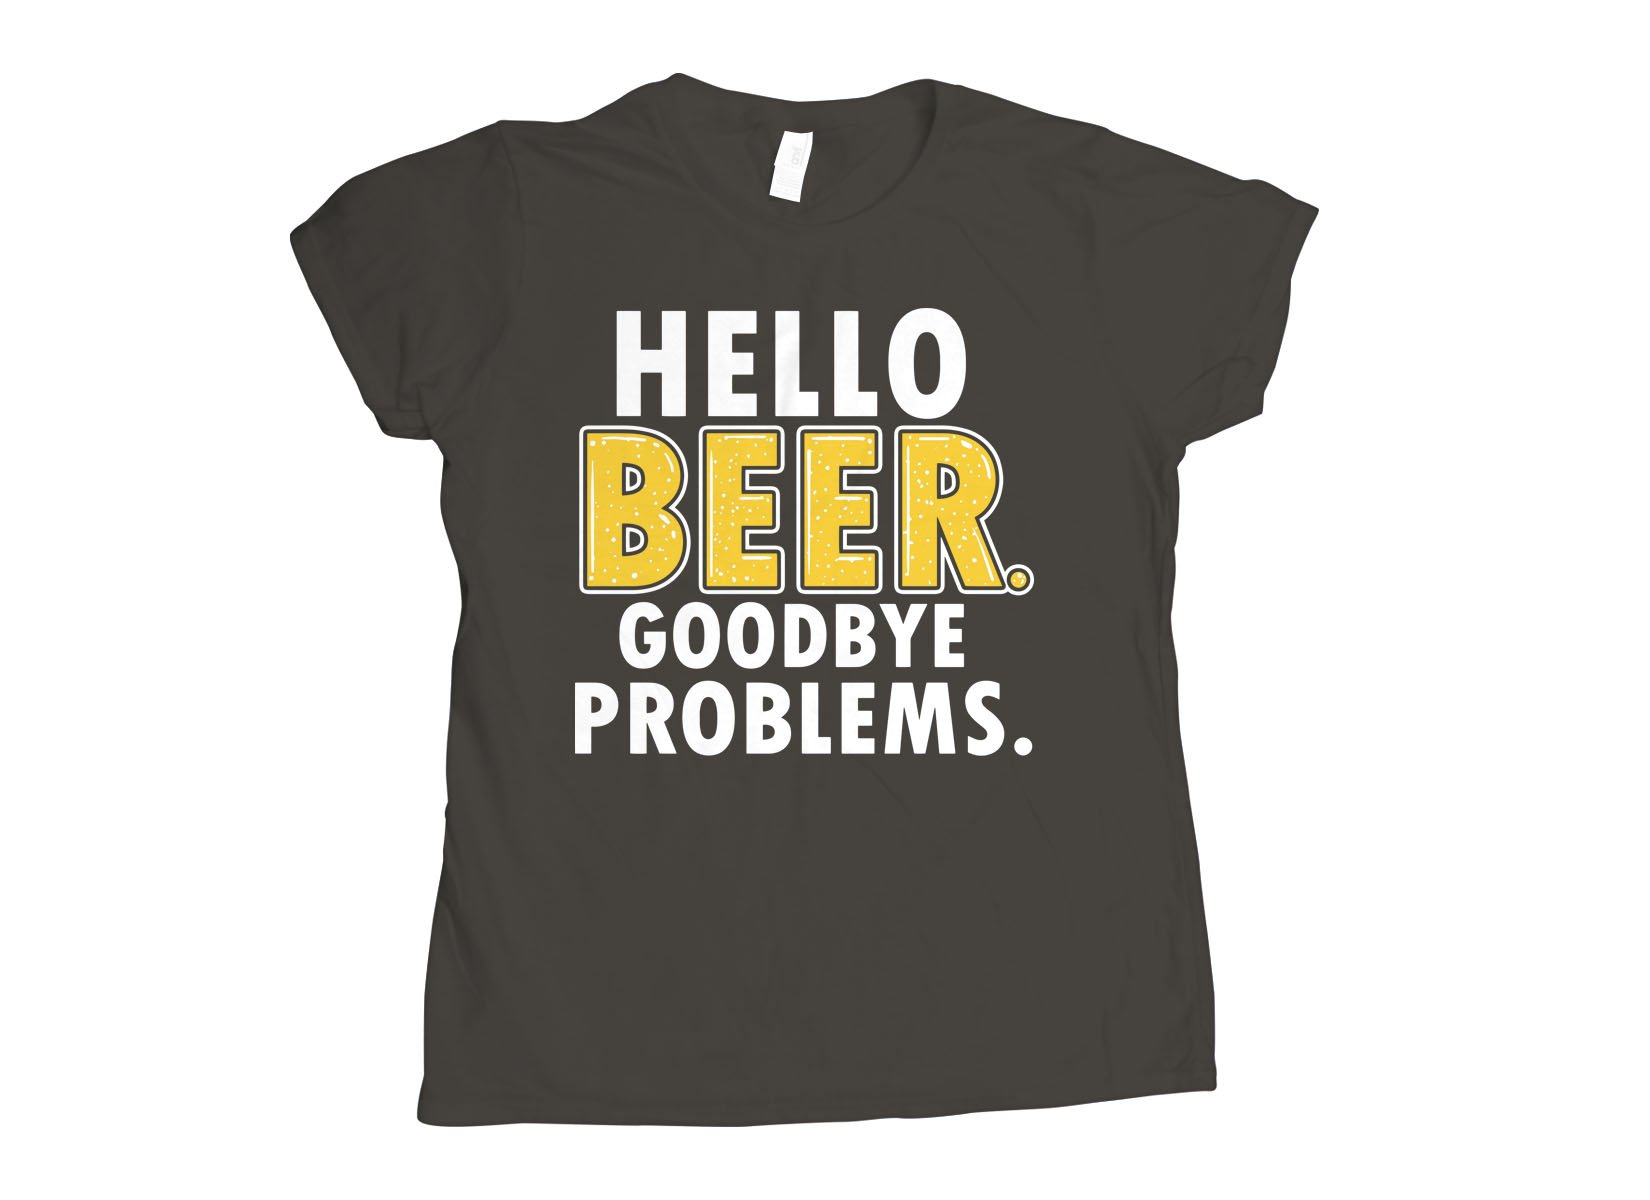 Hello Beer. Goodbye Problems. on Womens T-Shirt